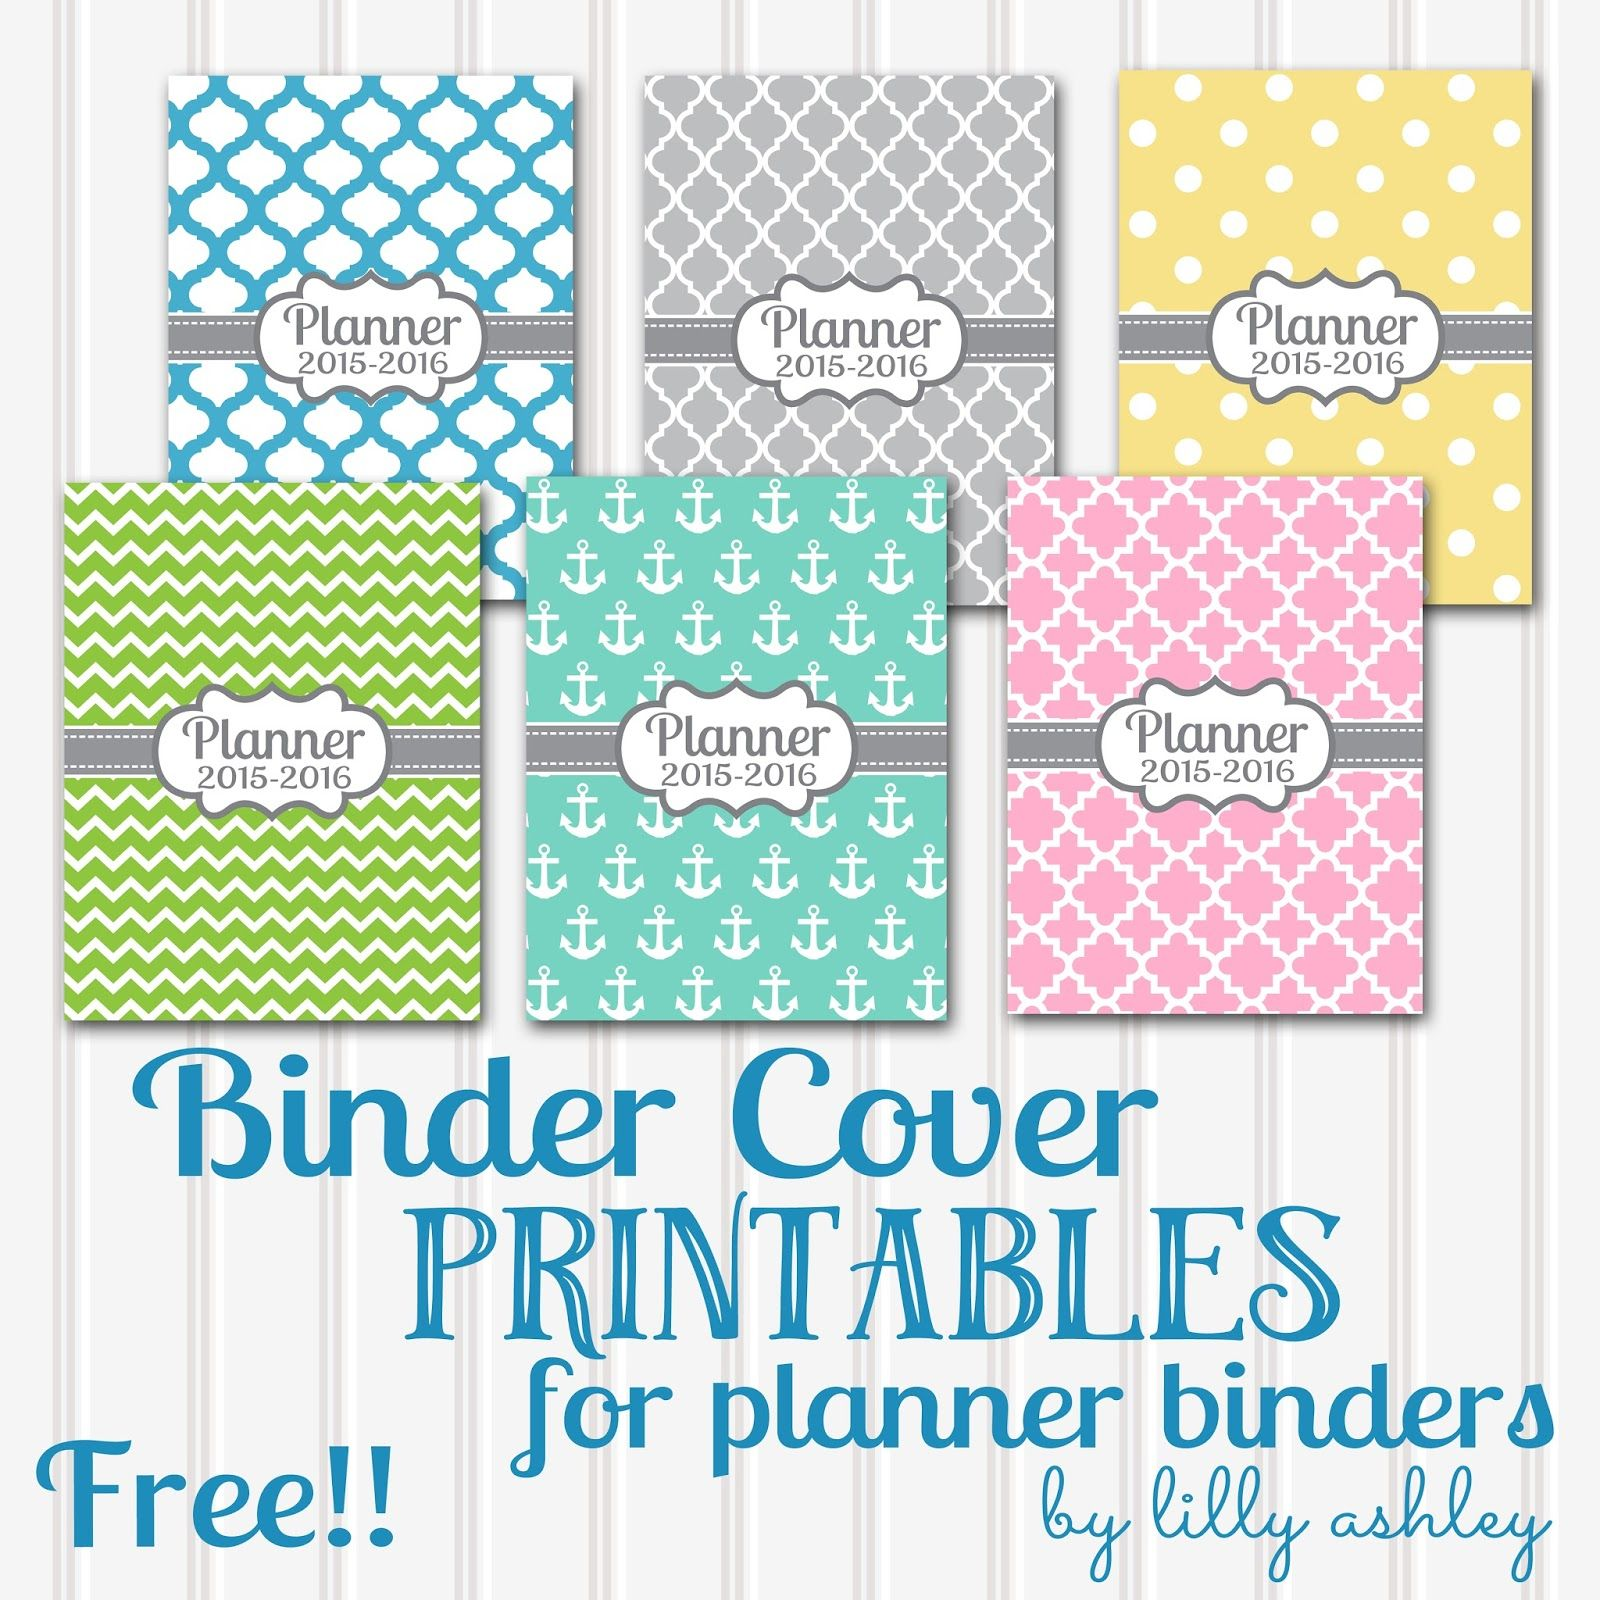 tagsfree binder cover templates 101 planners101 planners official site38 free binder cover templates word pdf publisher22 best binder cover template